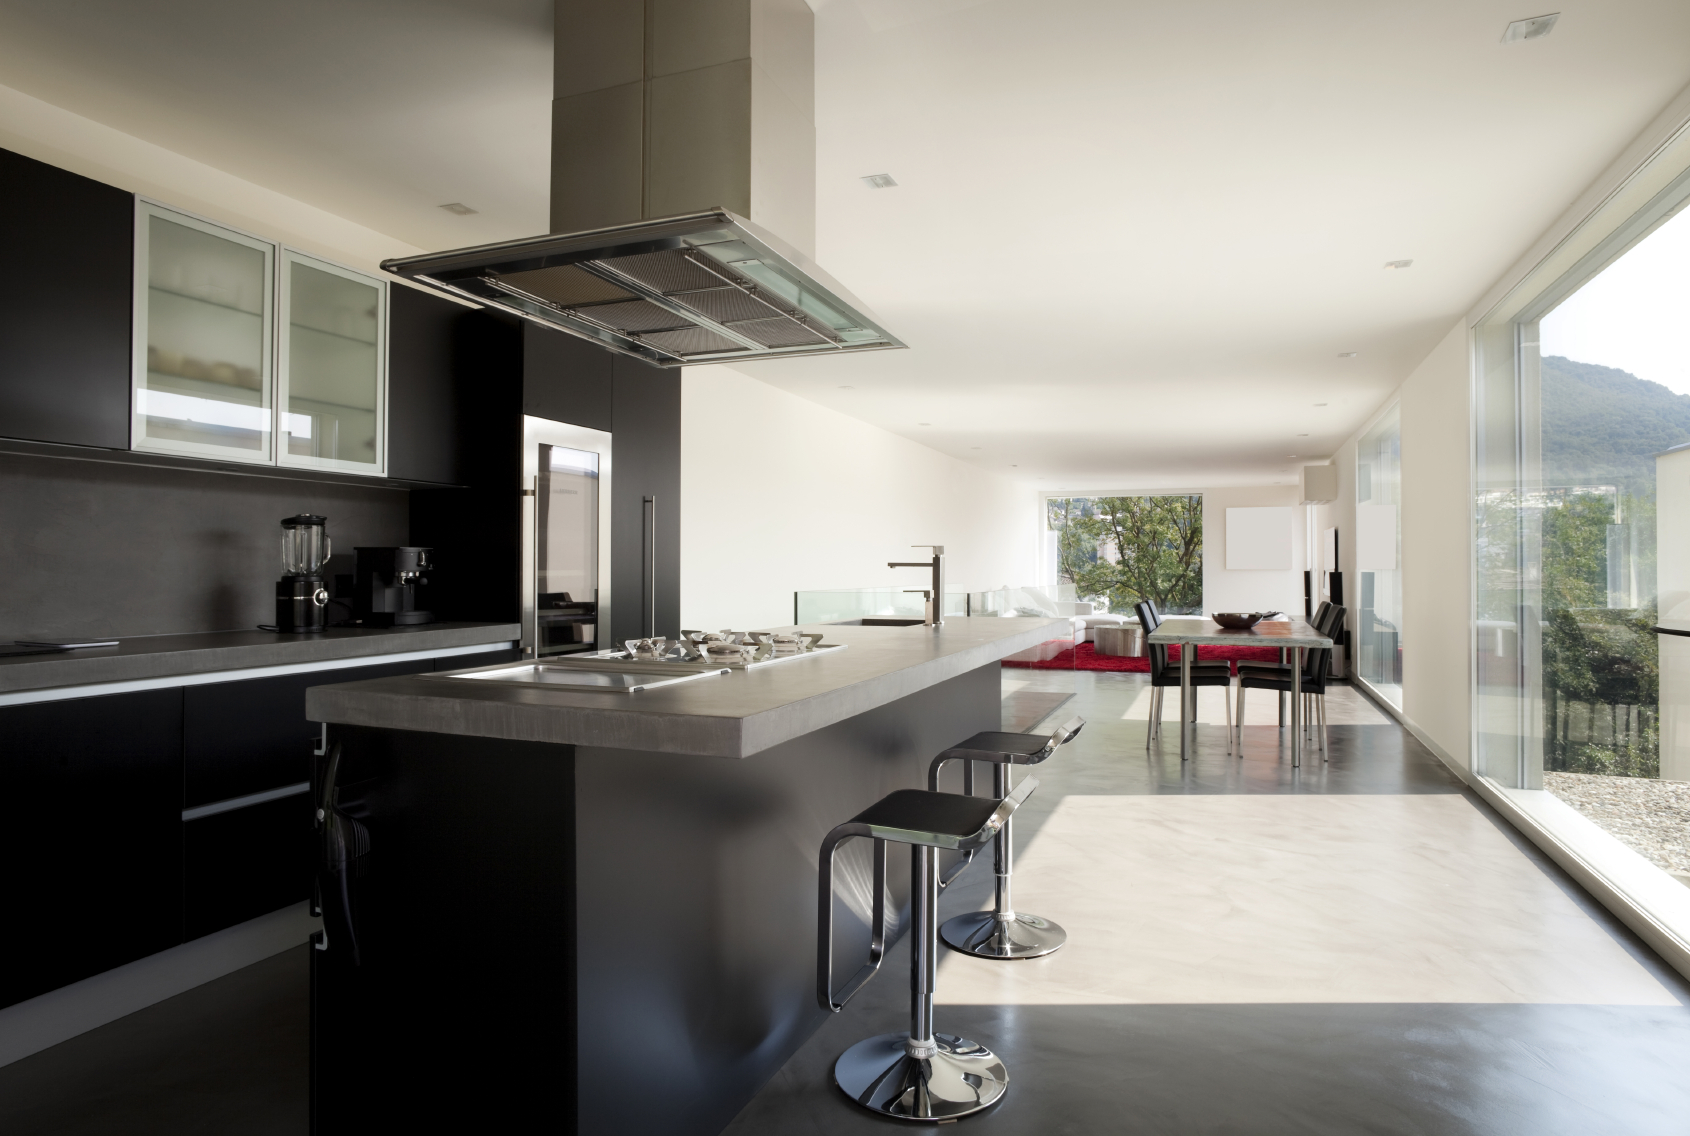 Lengthy kitchen features jet black cabinetry with slate grey countertops under large free-hanging hood vent, with dining and living areas in distant open space.